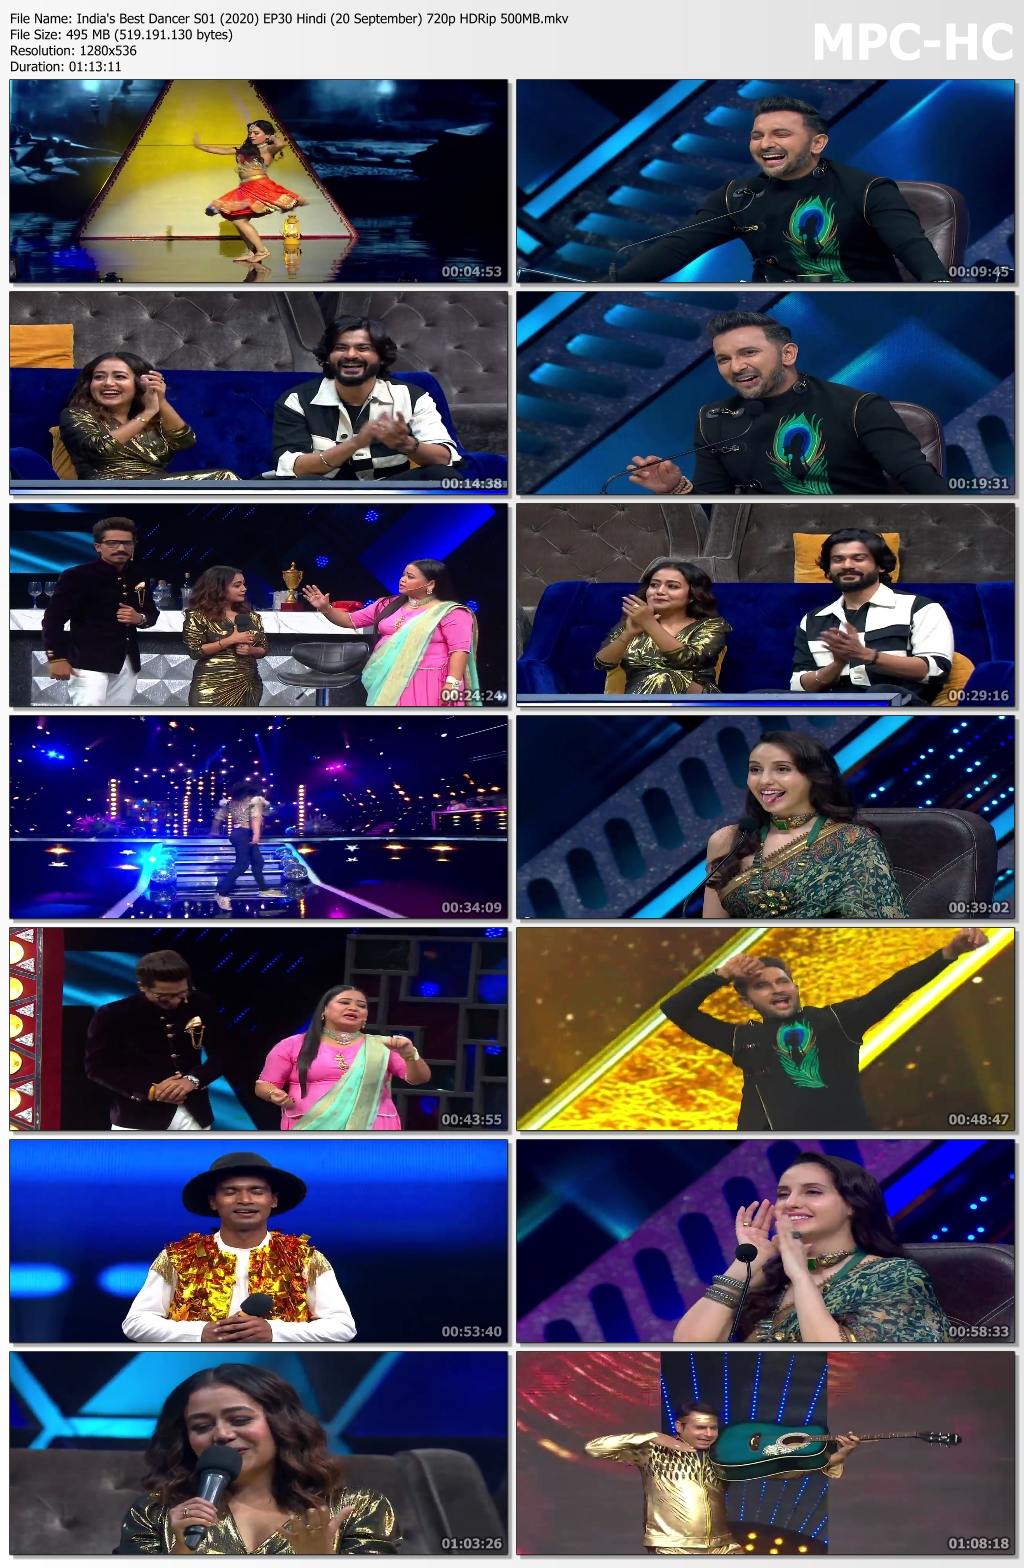 India-s-Best-Dancer-S01-2020-EP30-Hindi-20-September-720p-HDRip-500-MB-mkv-thumbs